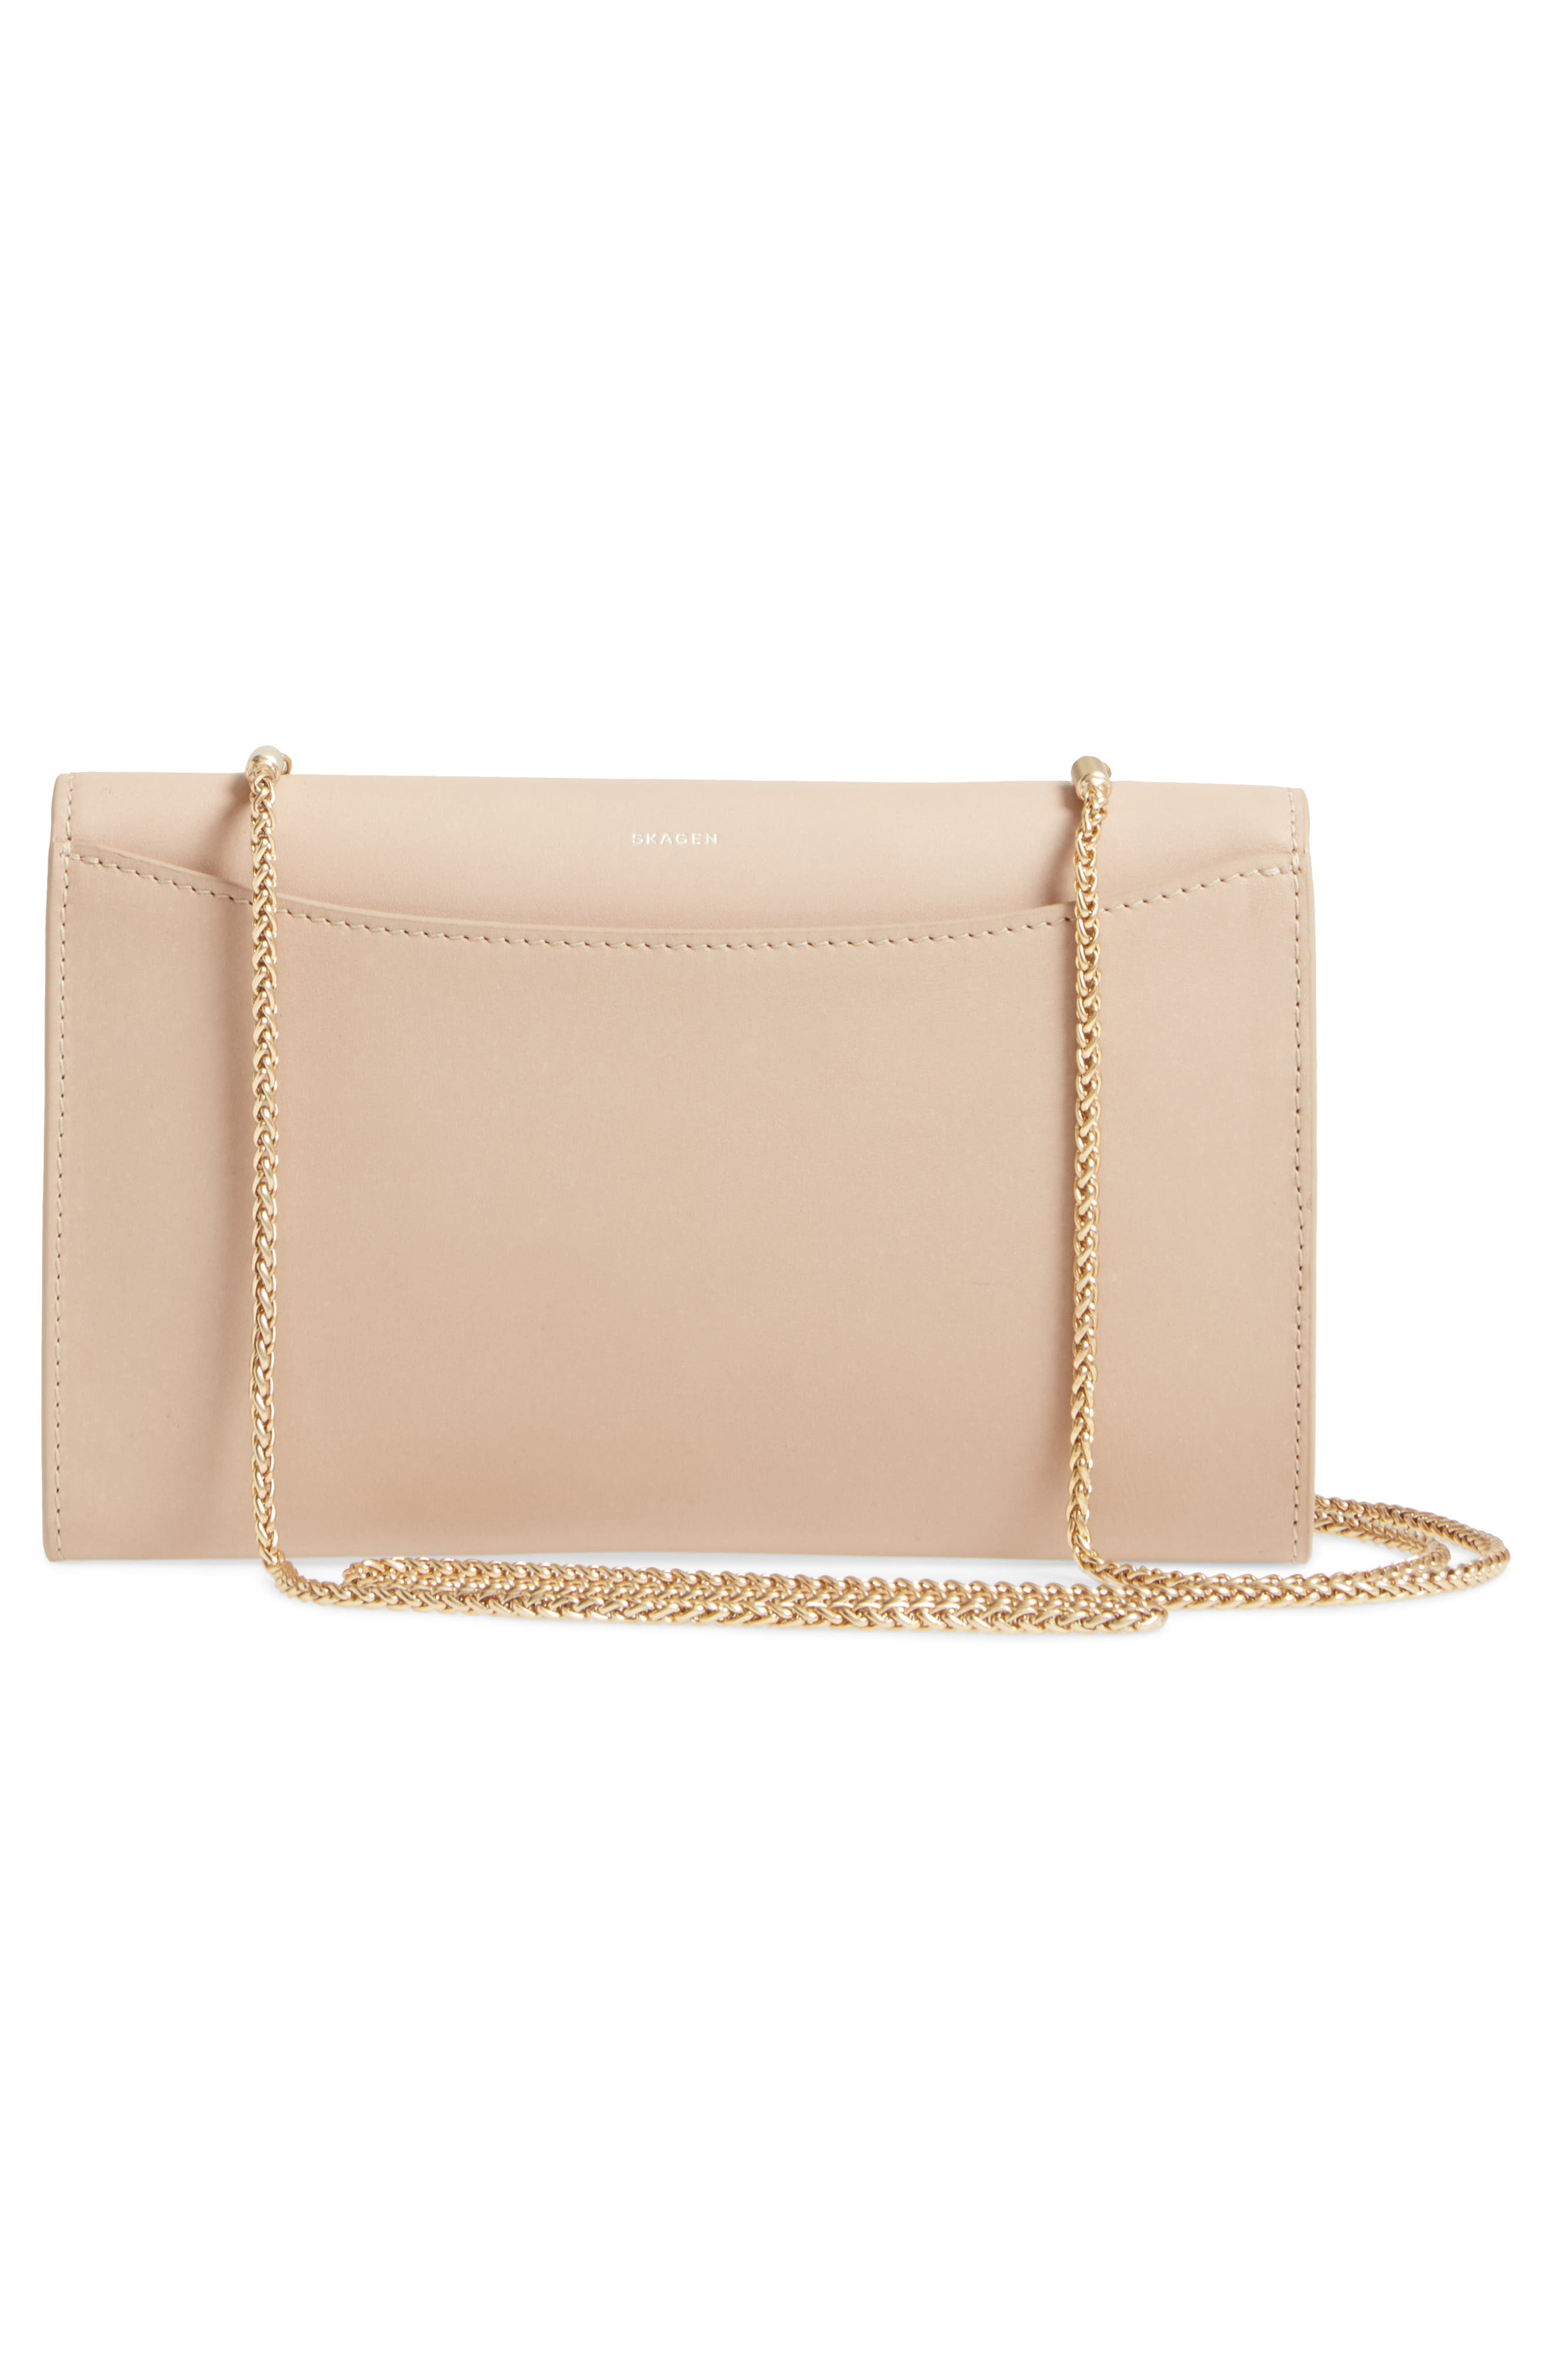 Eryka Leather Wallet on a Chain,                             Alternate thumbnail 3, color,                             251